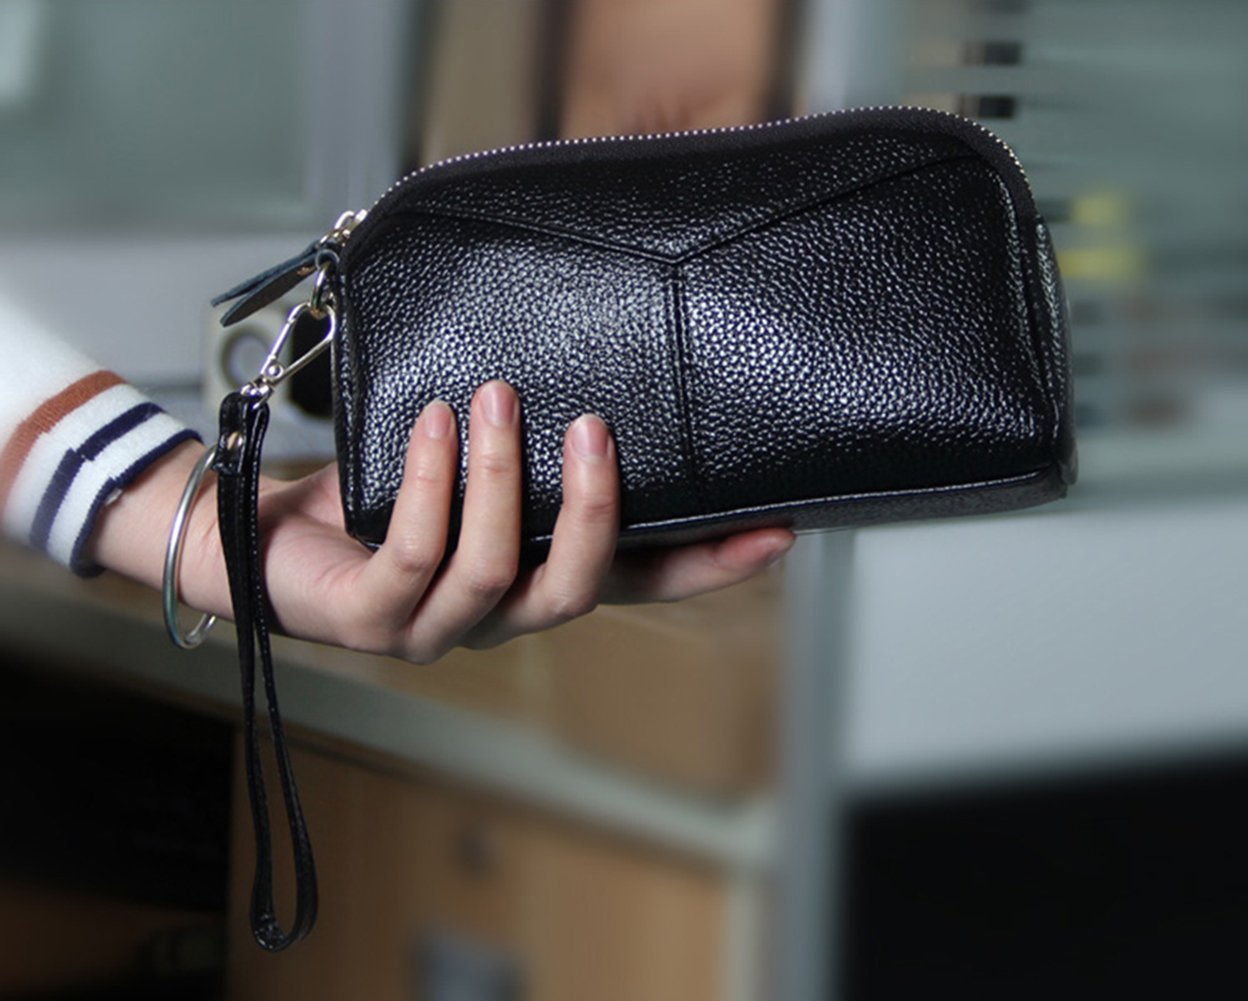 Black iSuperb Leather Clutch Bag Zipper Wallet Wristlet with Wrist Strap for Women Christmas Gift 7.3x4.3x2 inches